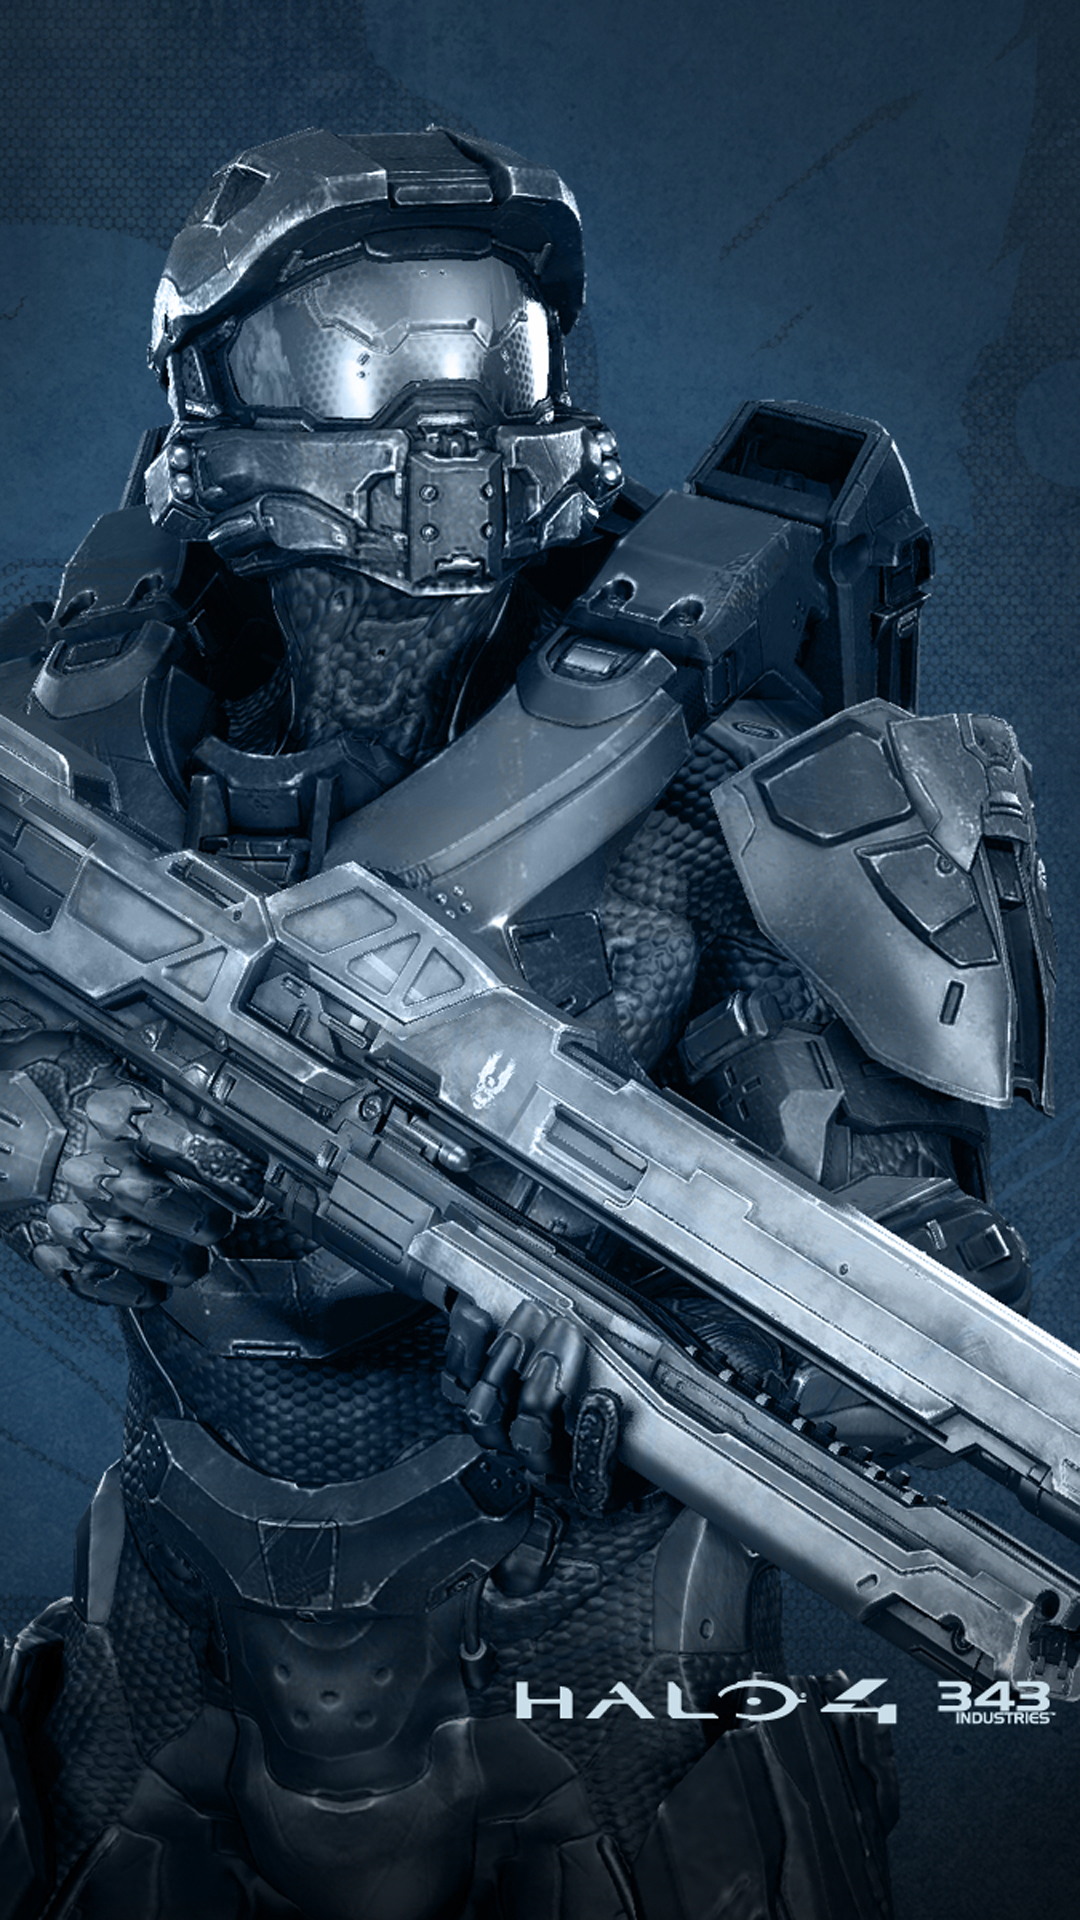 Game halo 4 best htc one wallpapers free and easy to download - Wallpaper game hd android ...